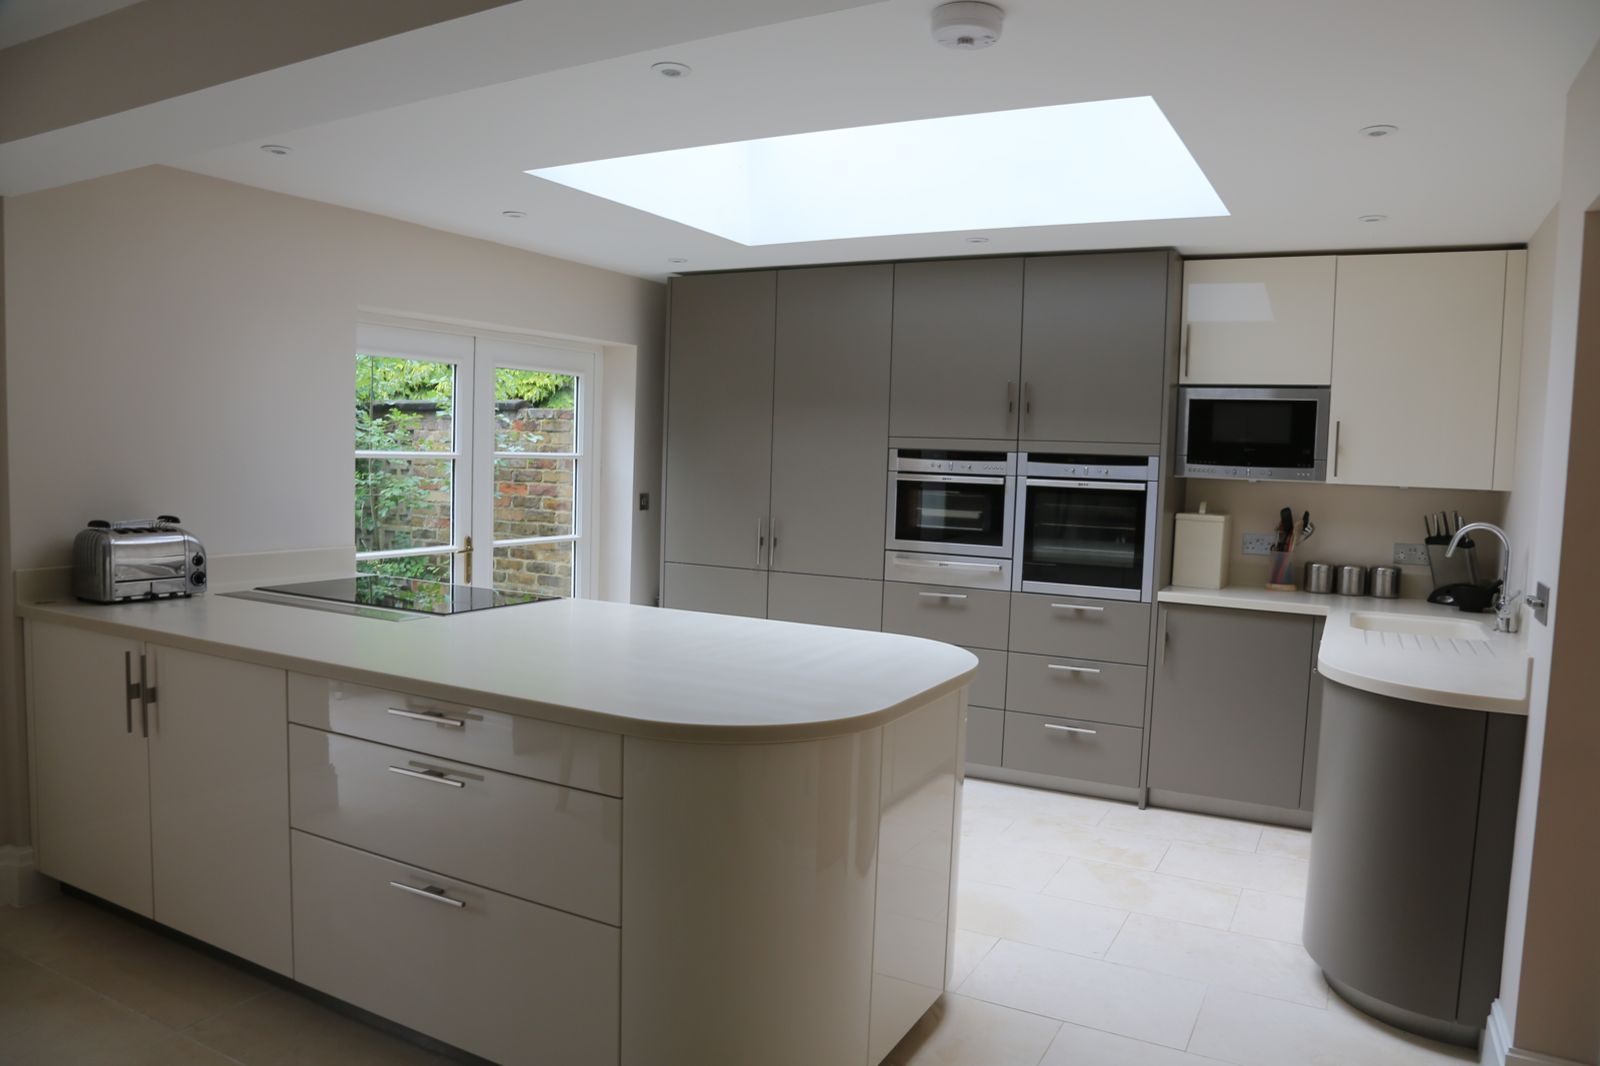 captivating beige gloss kitchen | Gloss Magnolia and Satin Beige by Hacker at The Kitchen ...